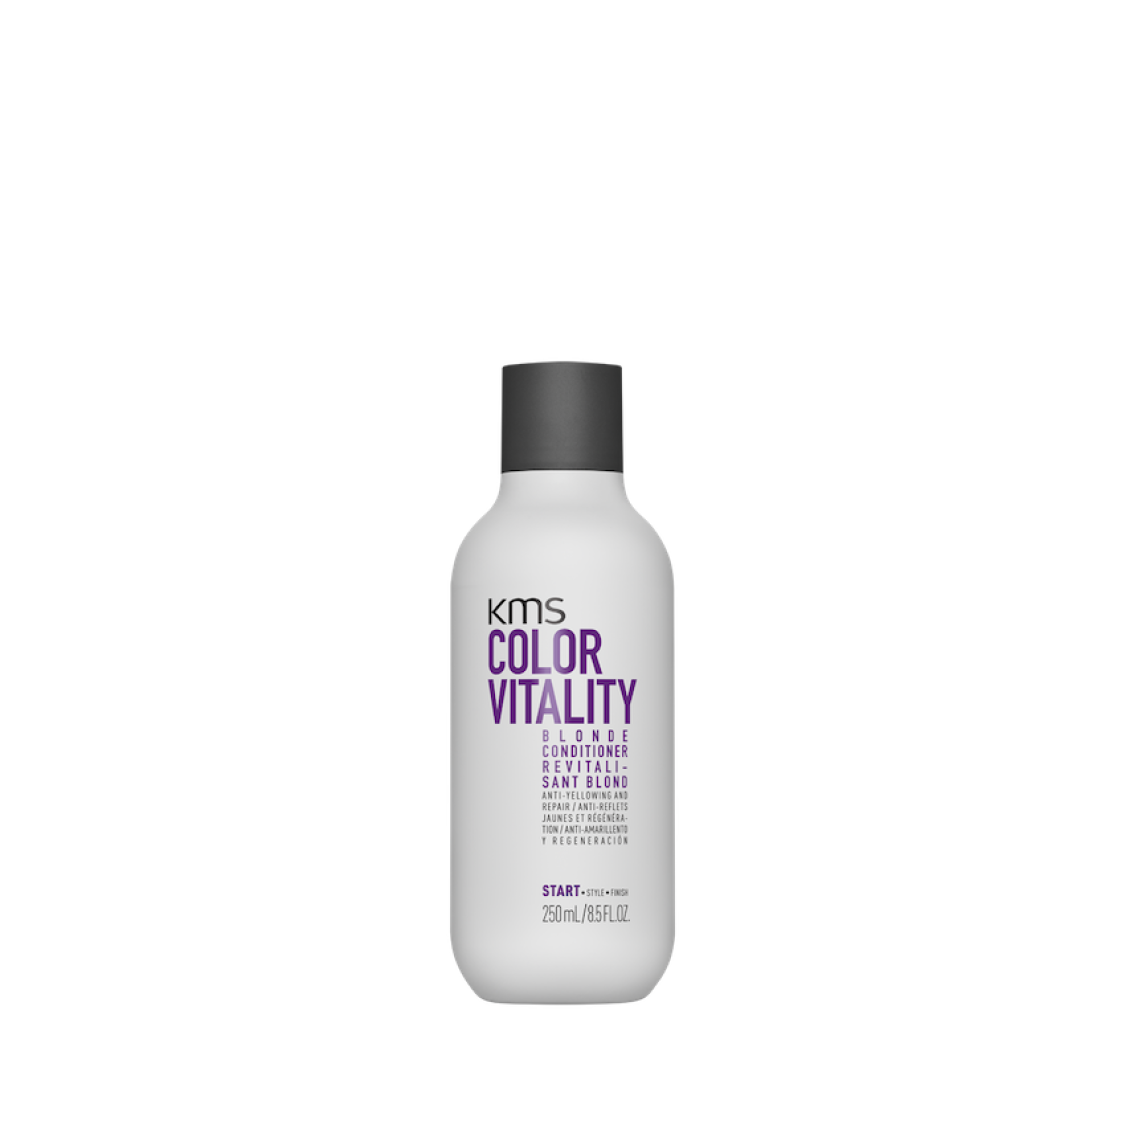 KMS - Color Vitality Blonde Conditioner 250ml